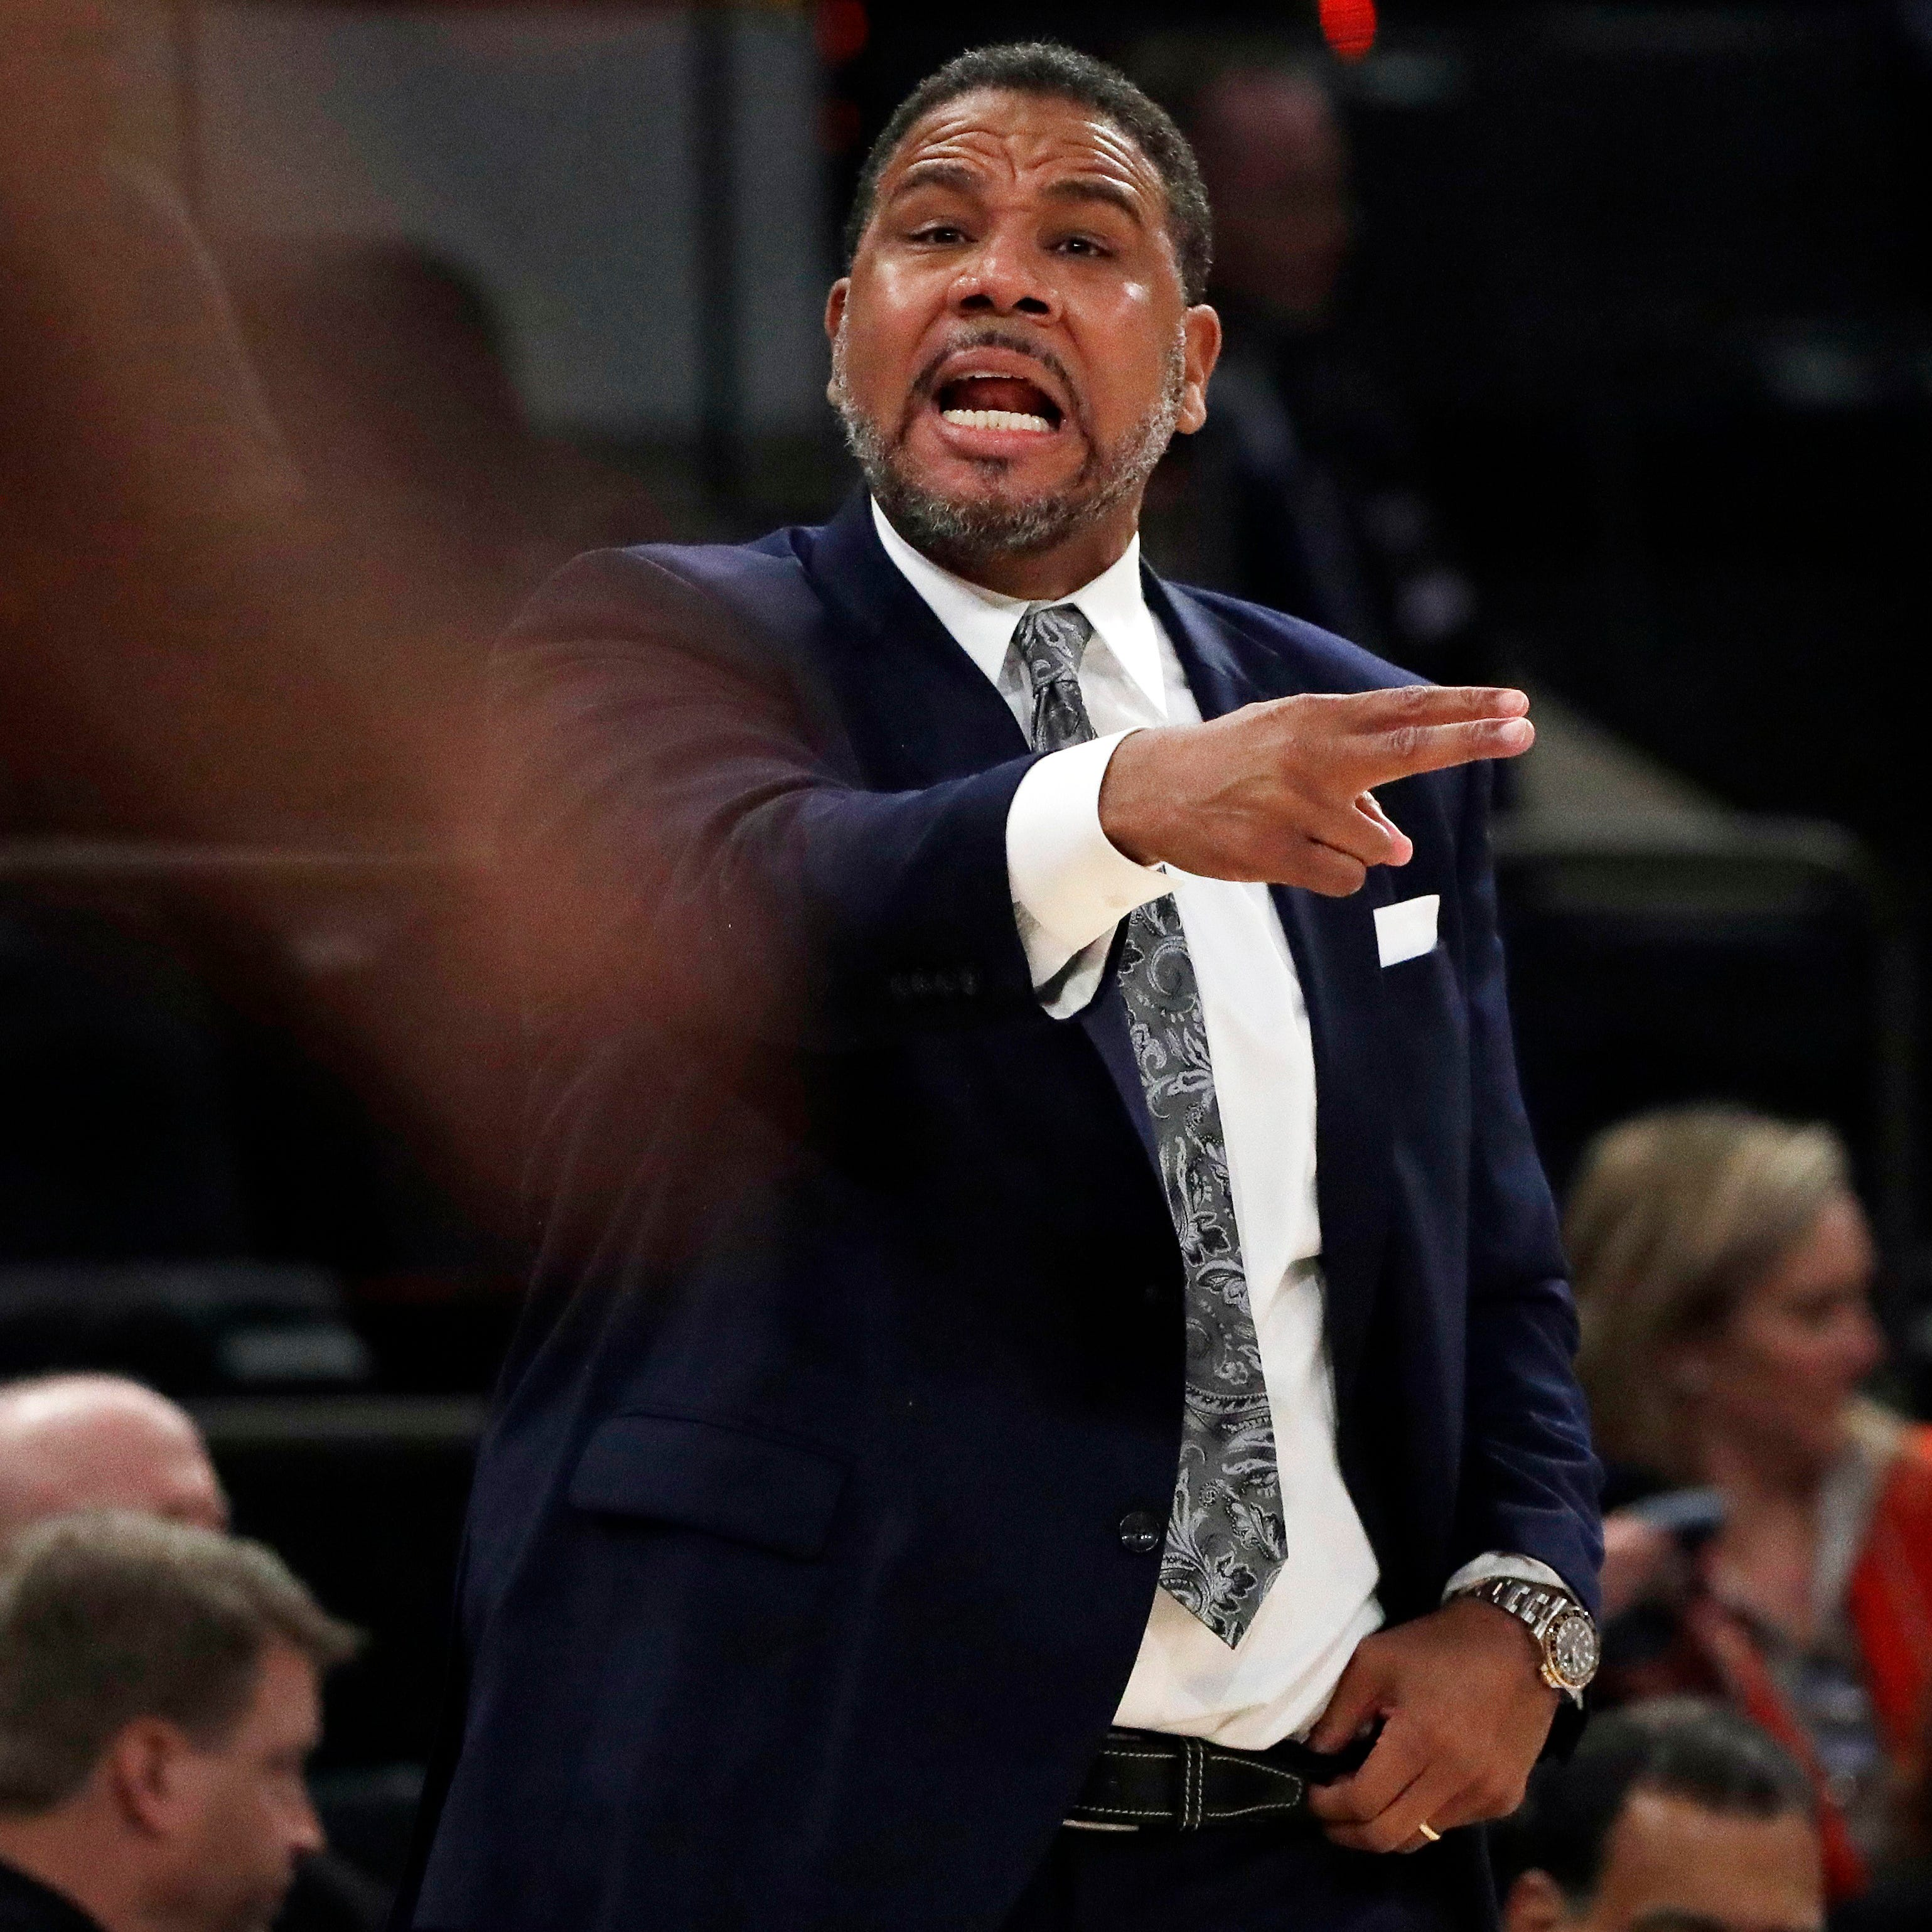 Michigan basketball coaching candidate Ed Cooley to stay at Providence